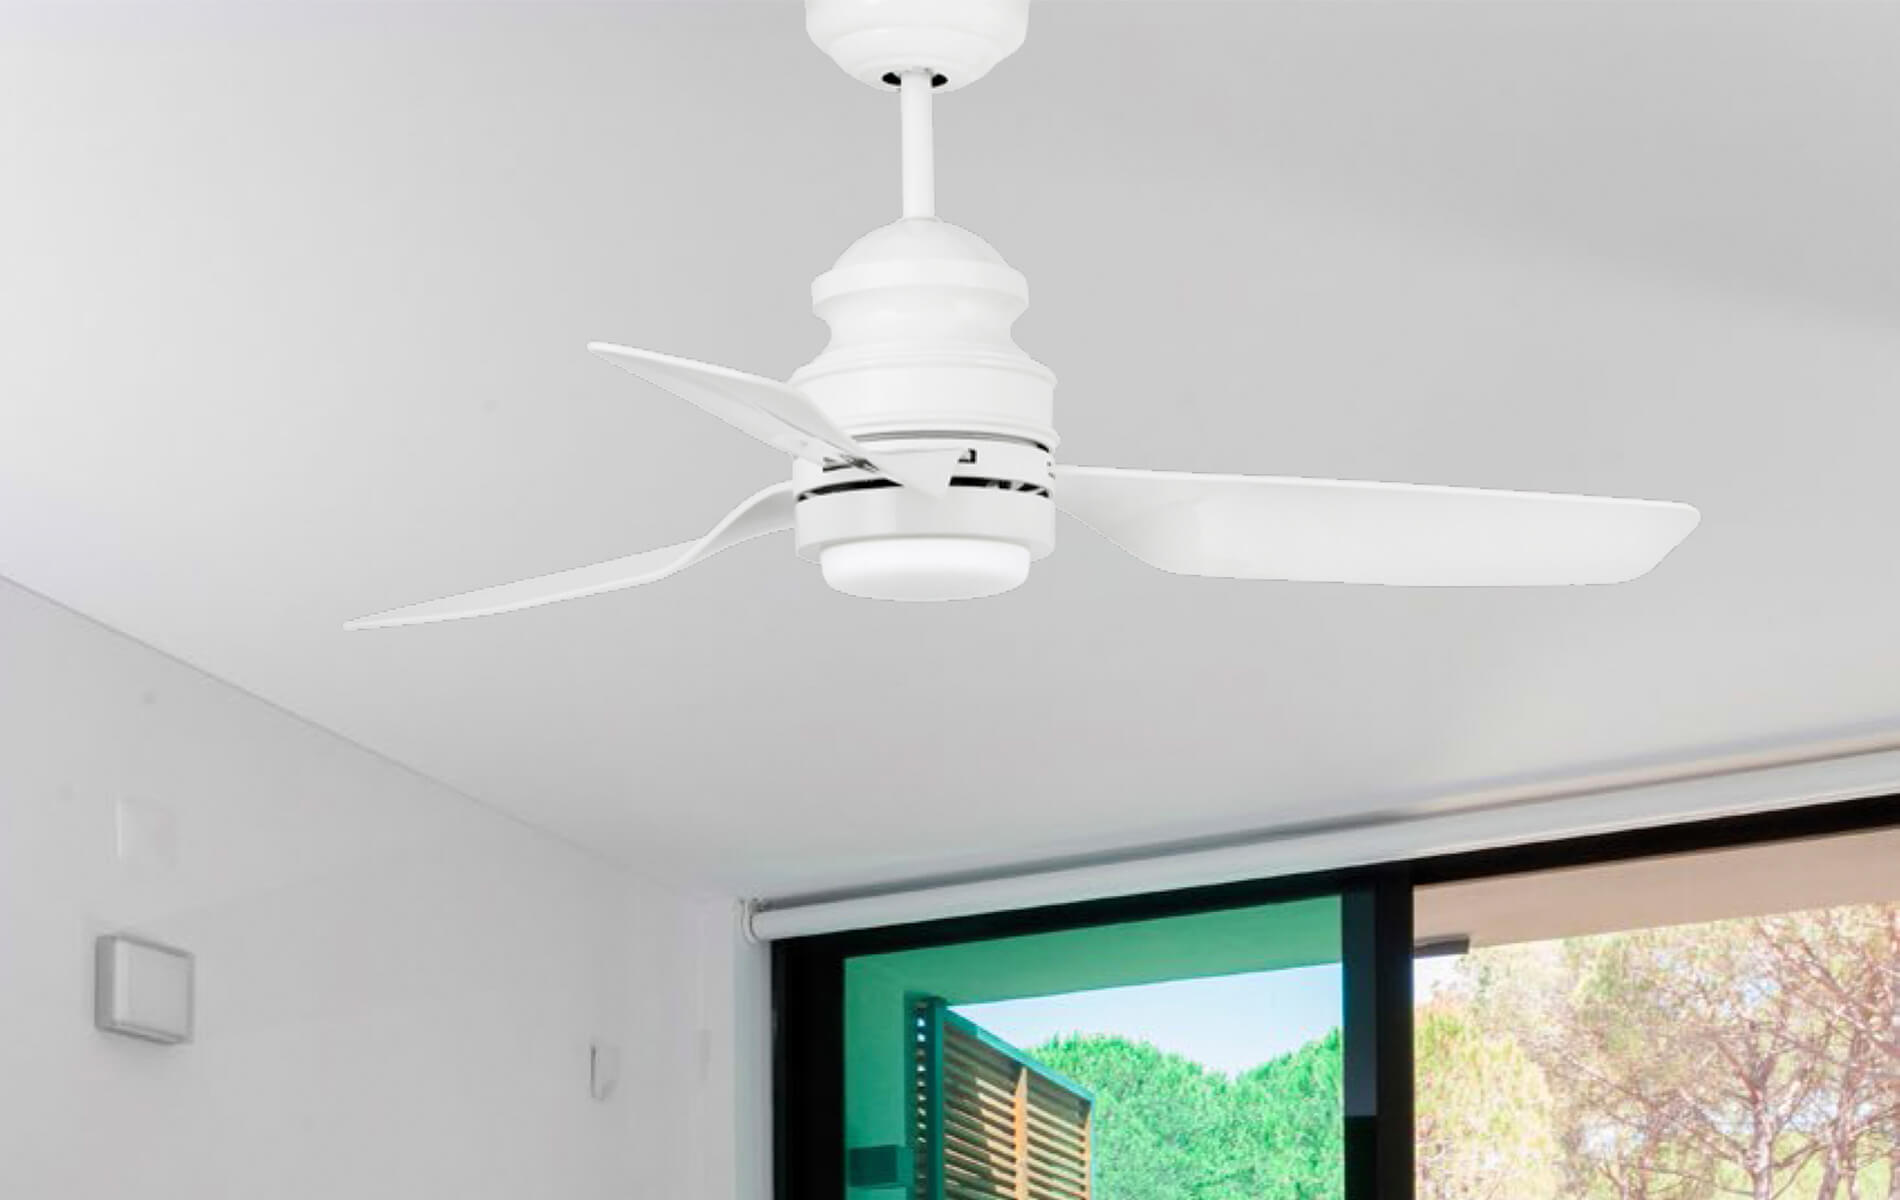 More information of Faro PHUKET ceiling fan.